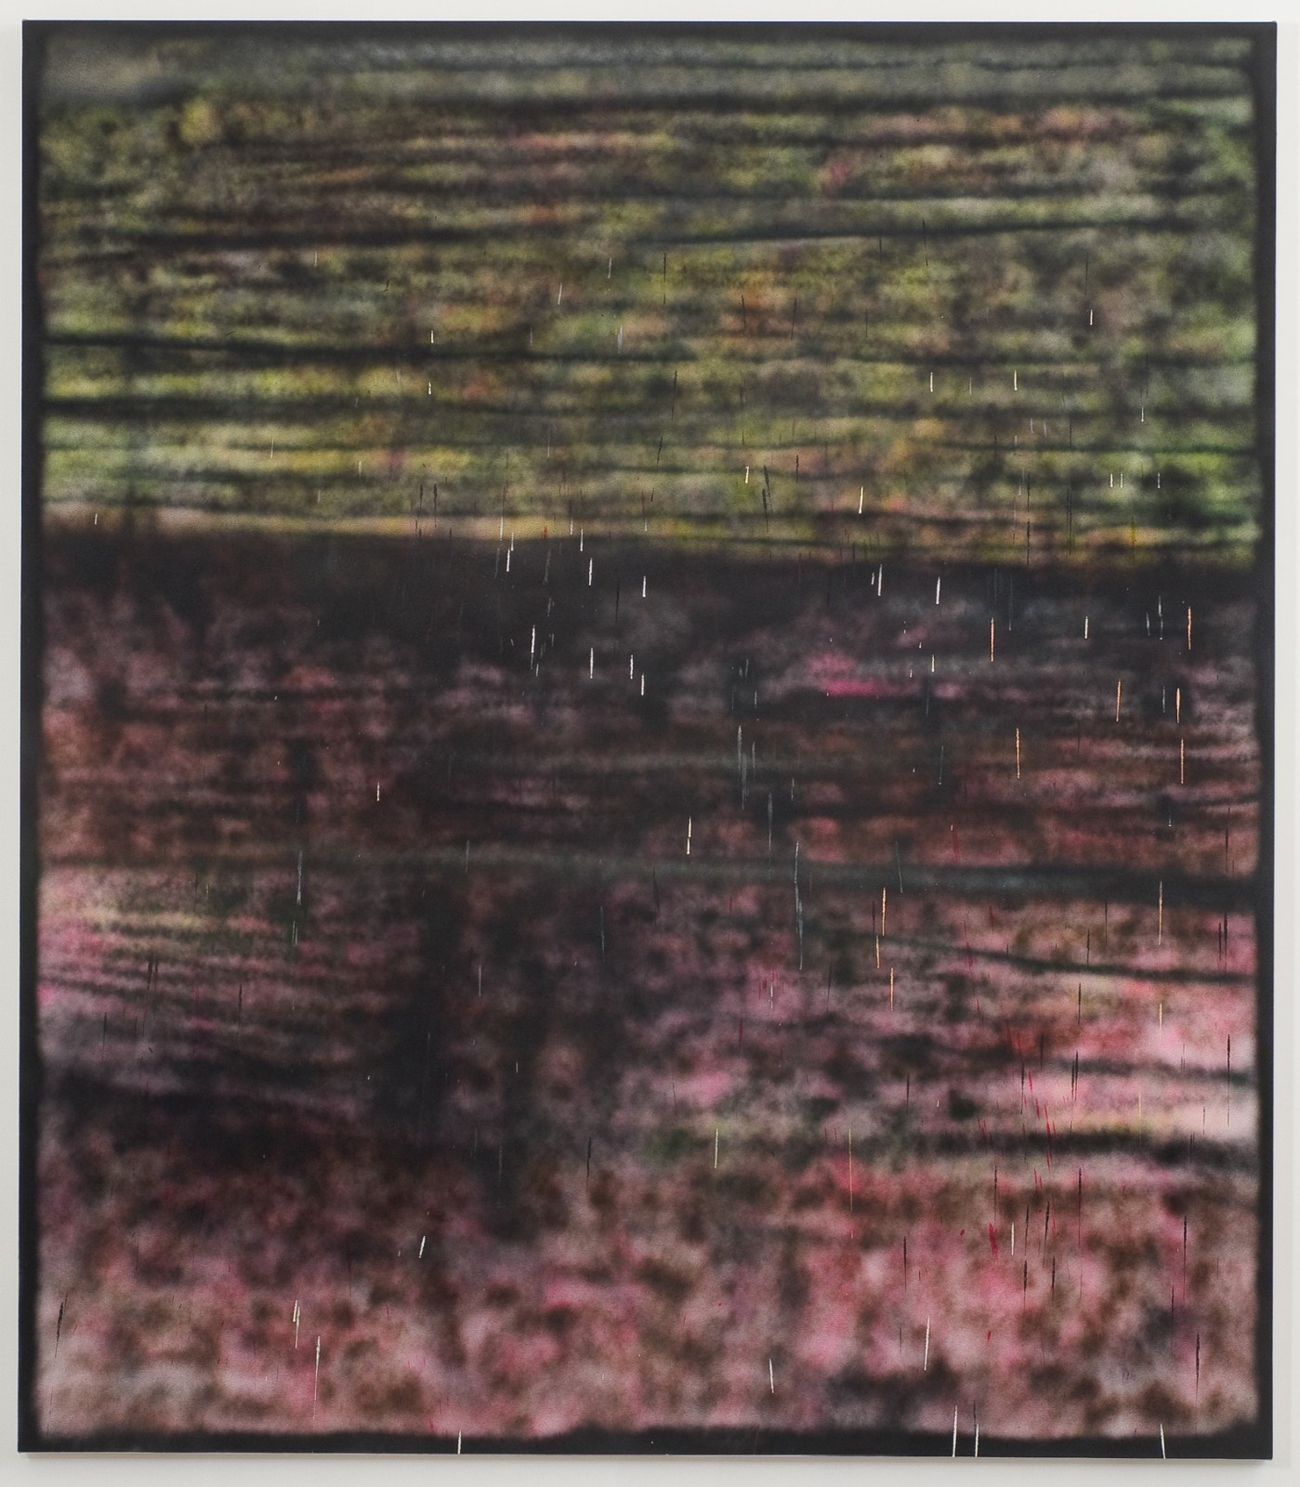 Sterling ruby delahunty fine art contemporary art london for Sterling ruby paintings